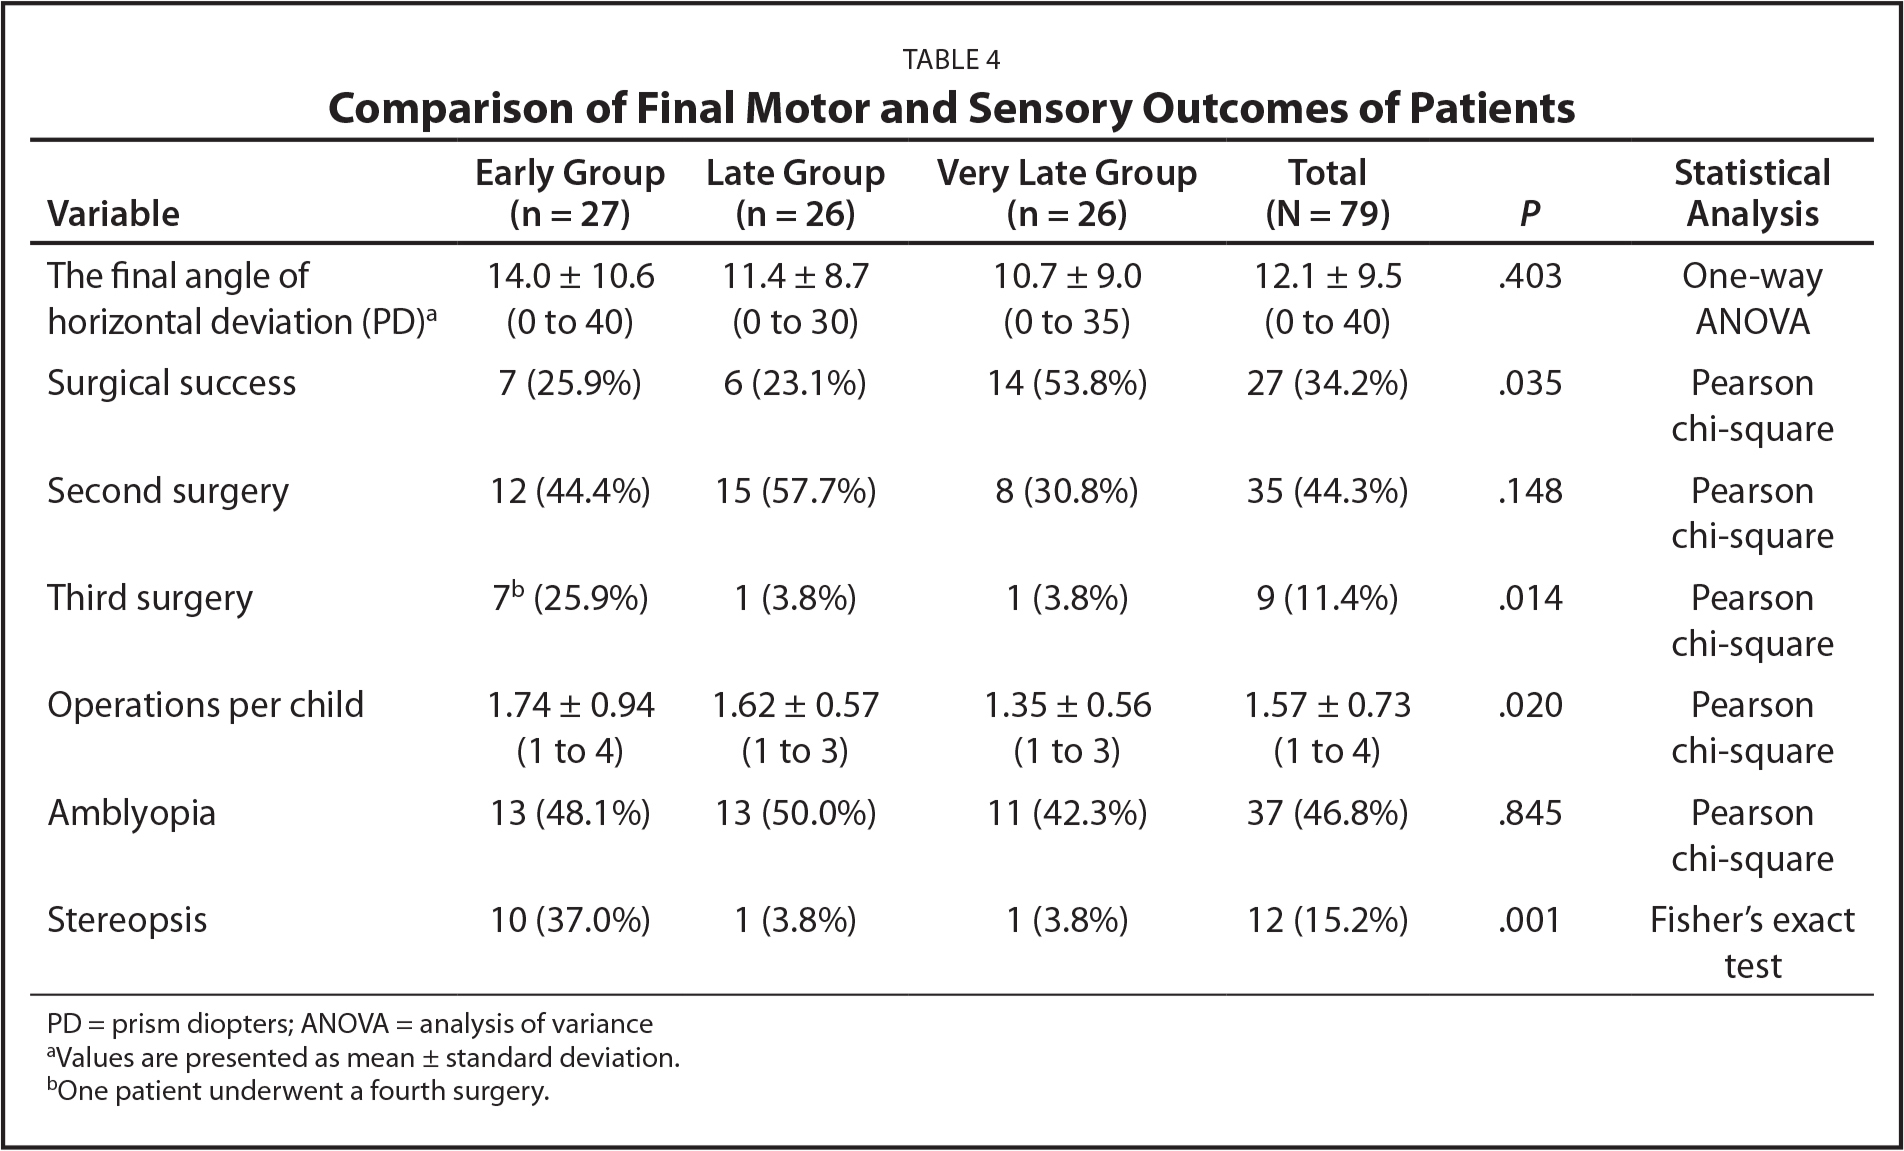 Comparison of Final Motor and Sensory Outcomes of Patients